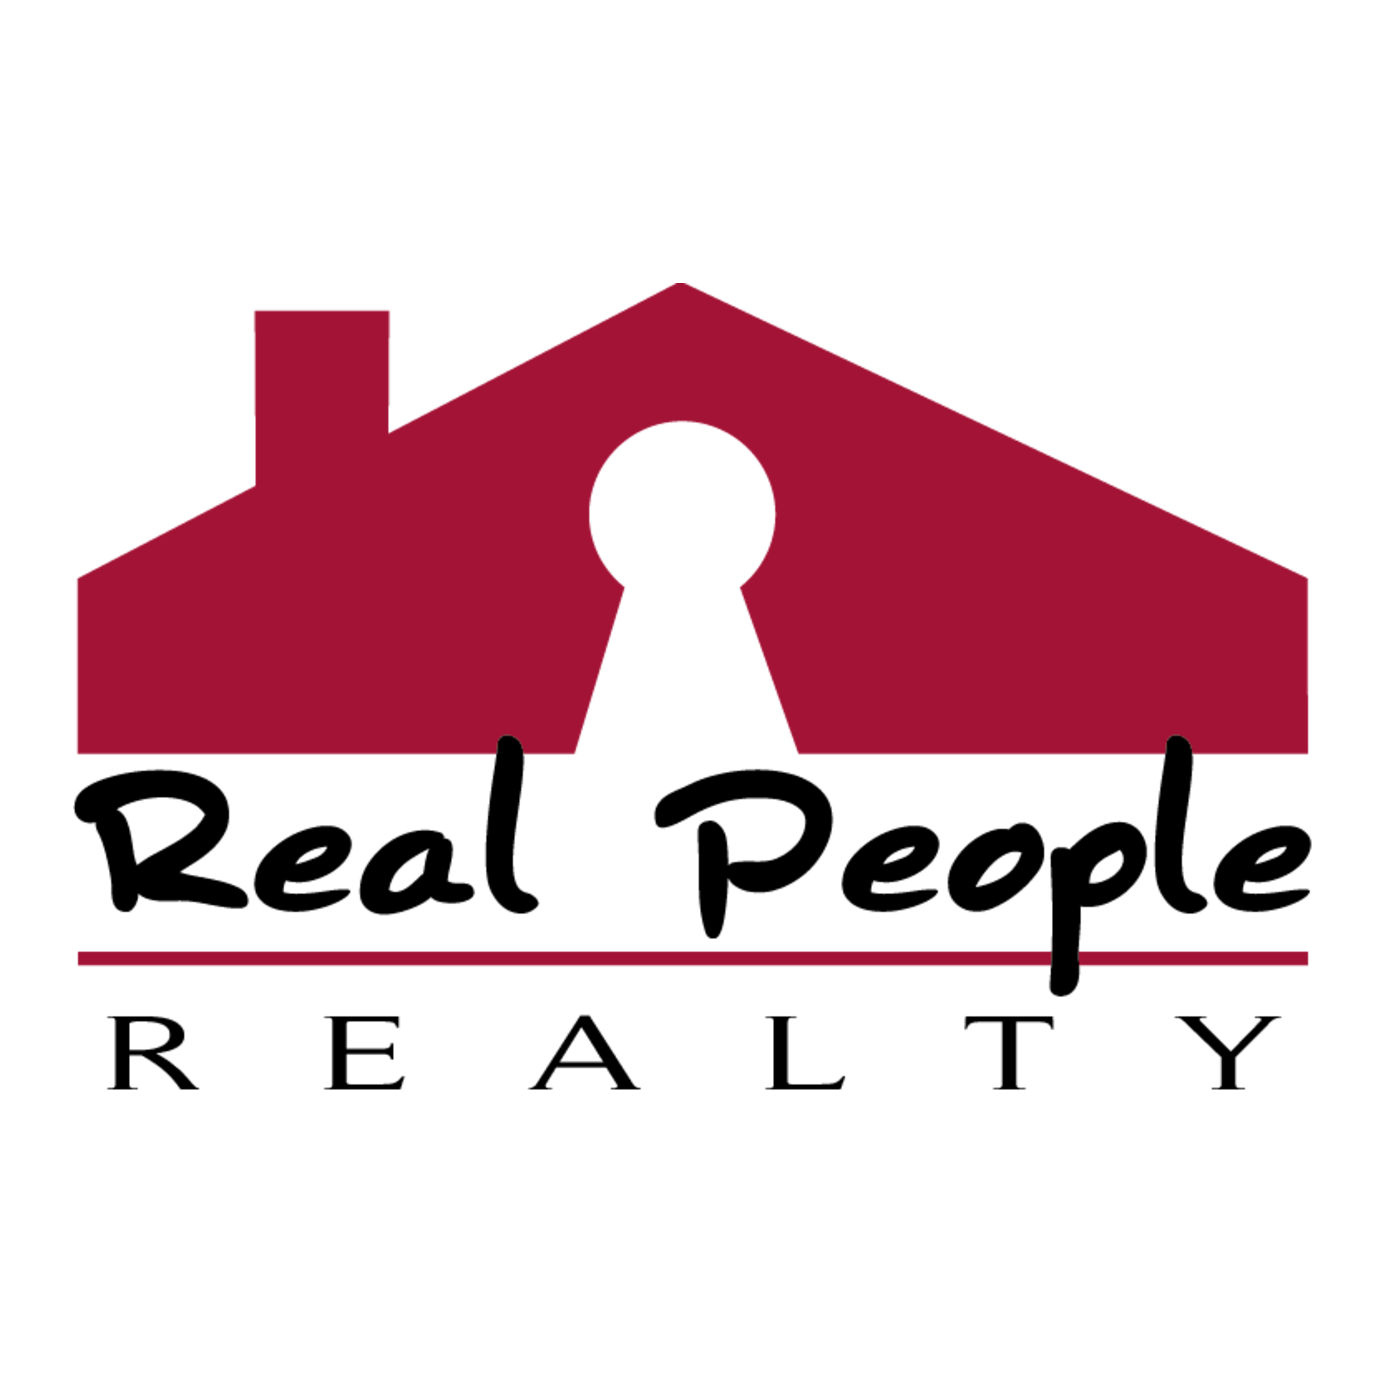 Samuel Jordt - Real People Realty Inc